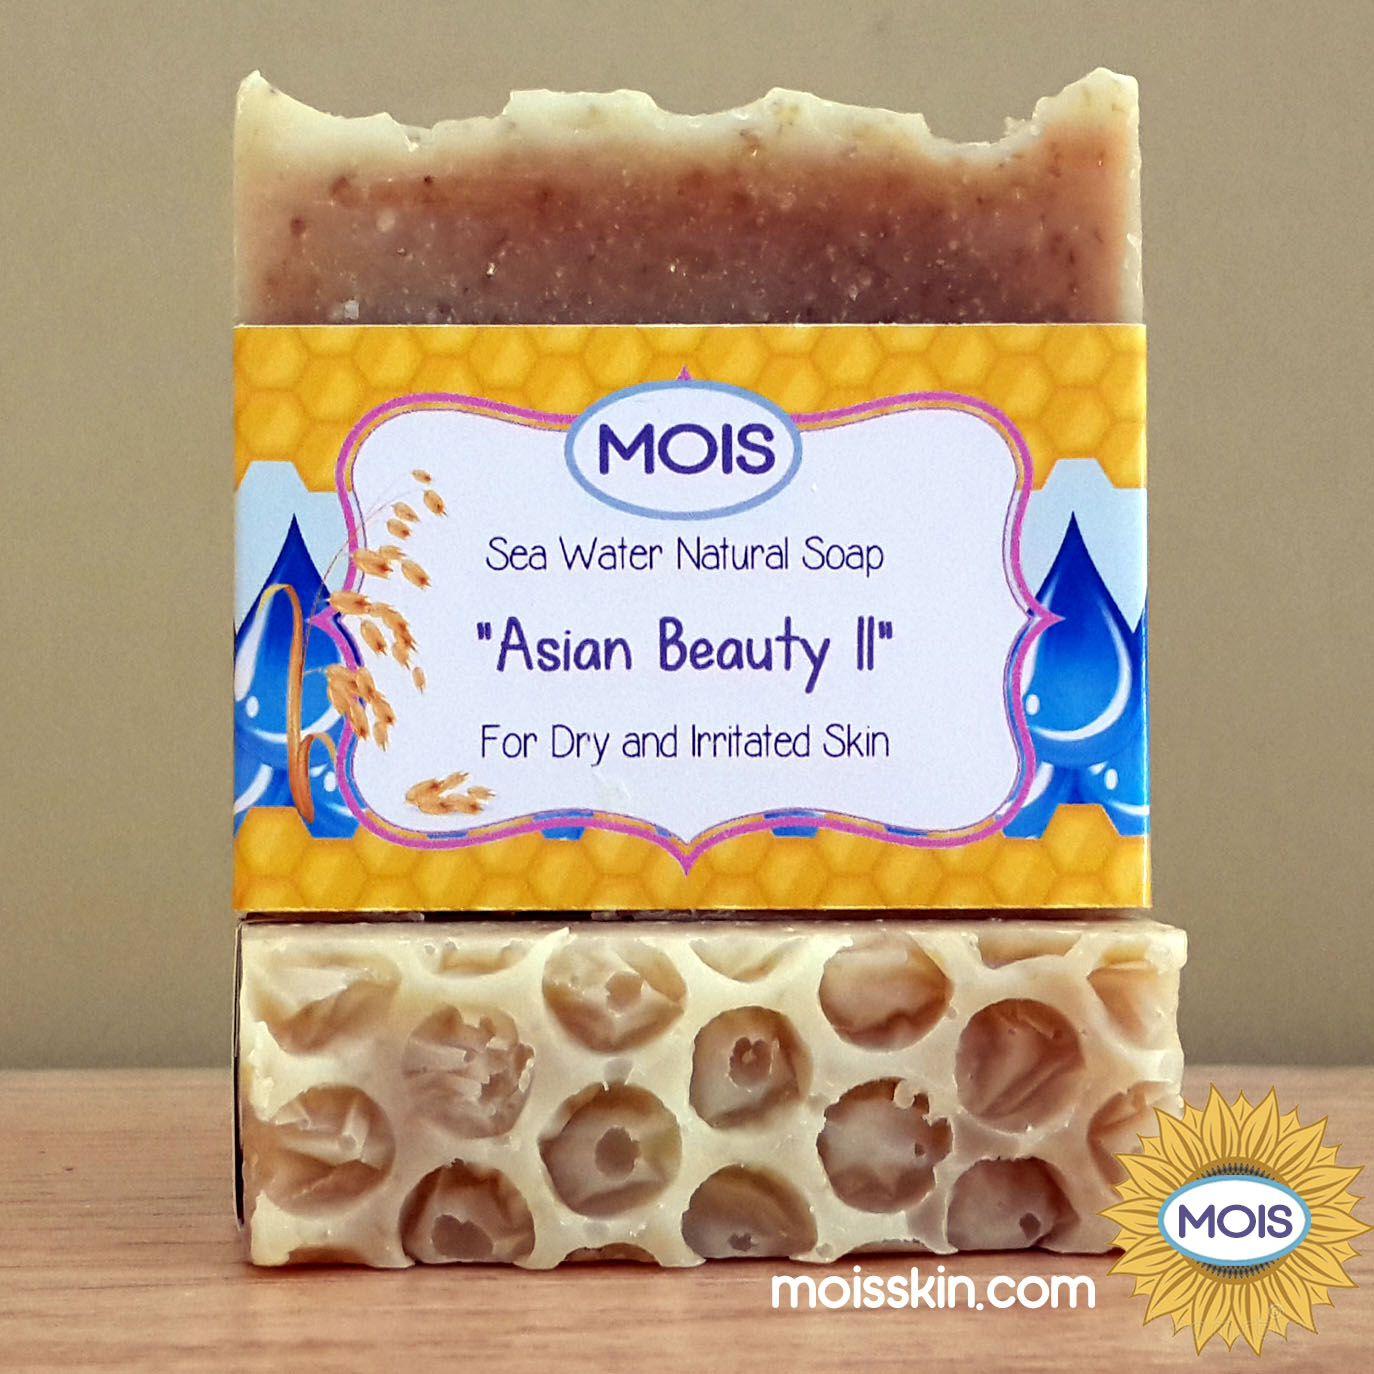 Made with extra moisturizer and honey, this soap is effective for moisturizing ultra dry skin.